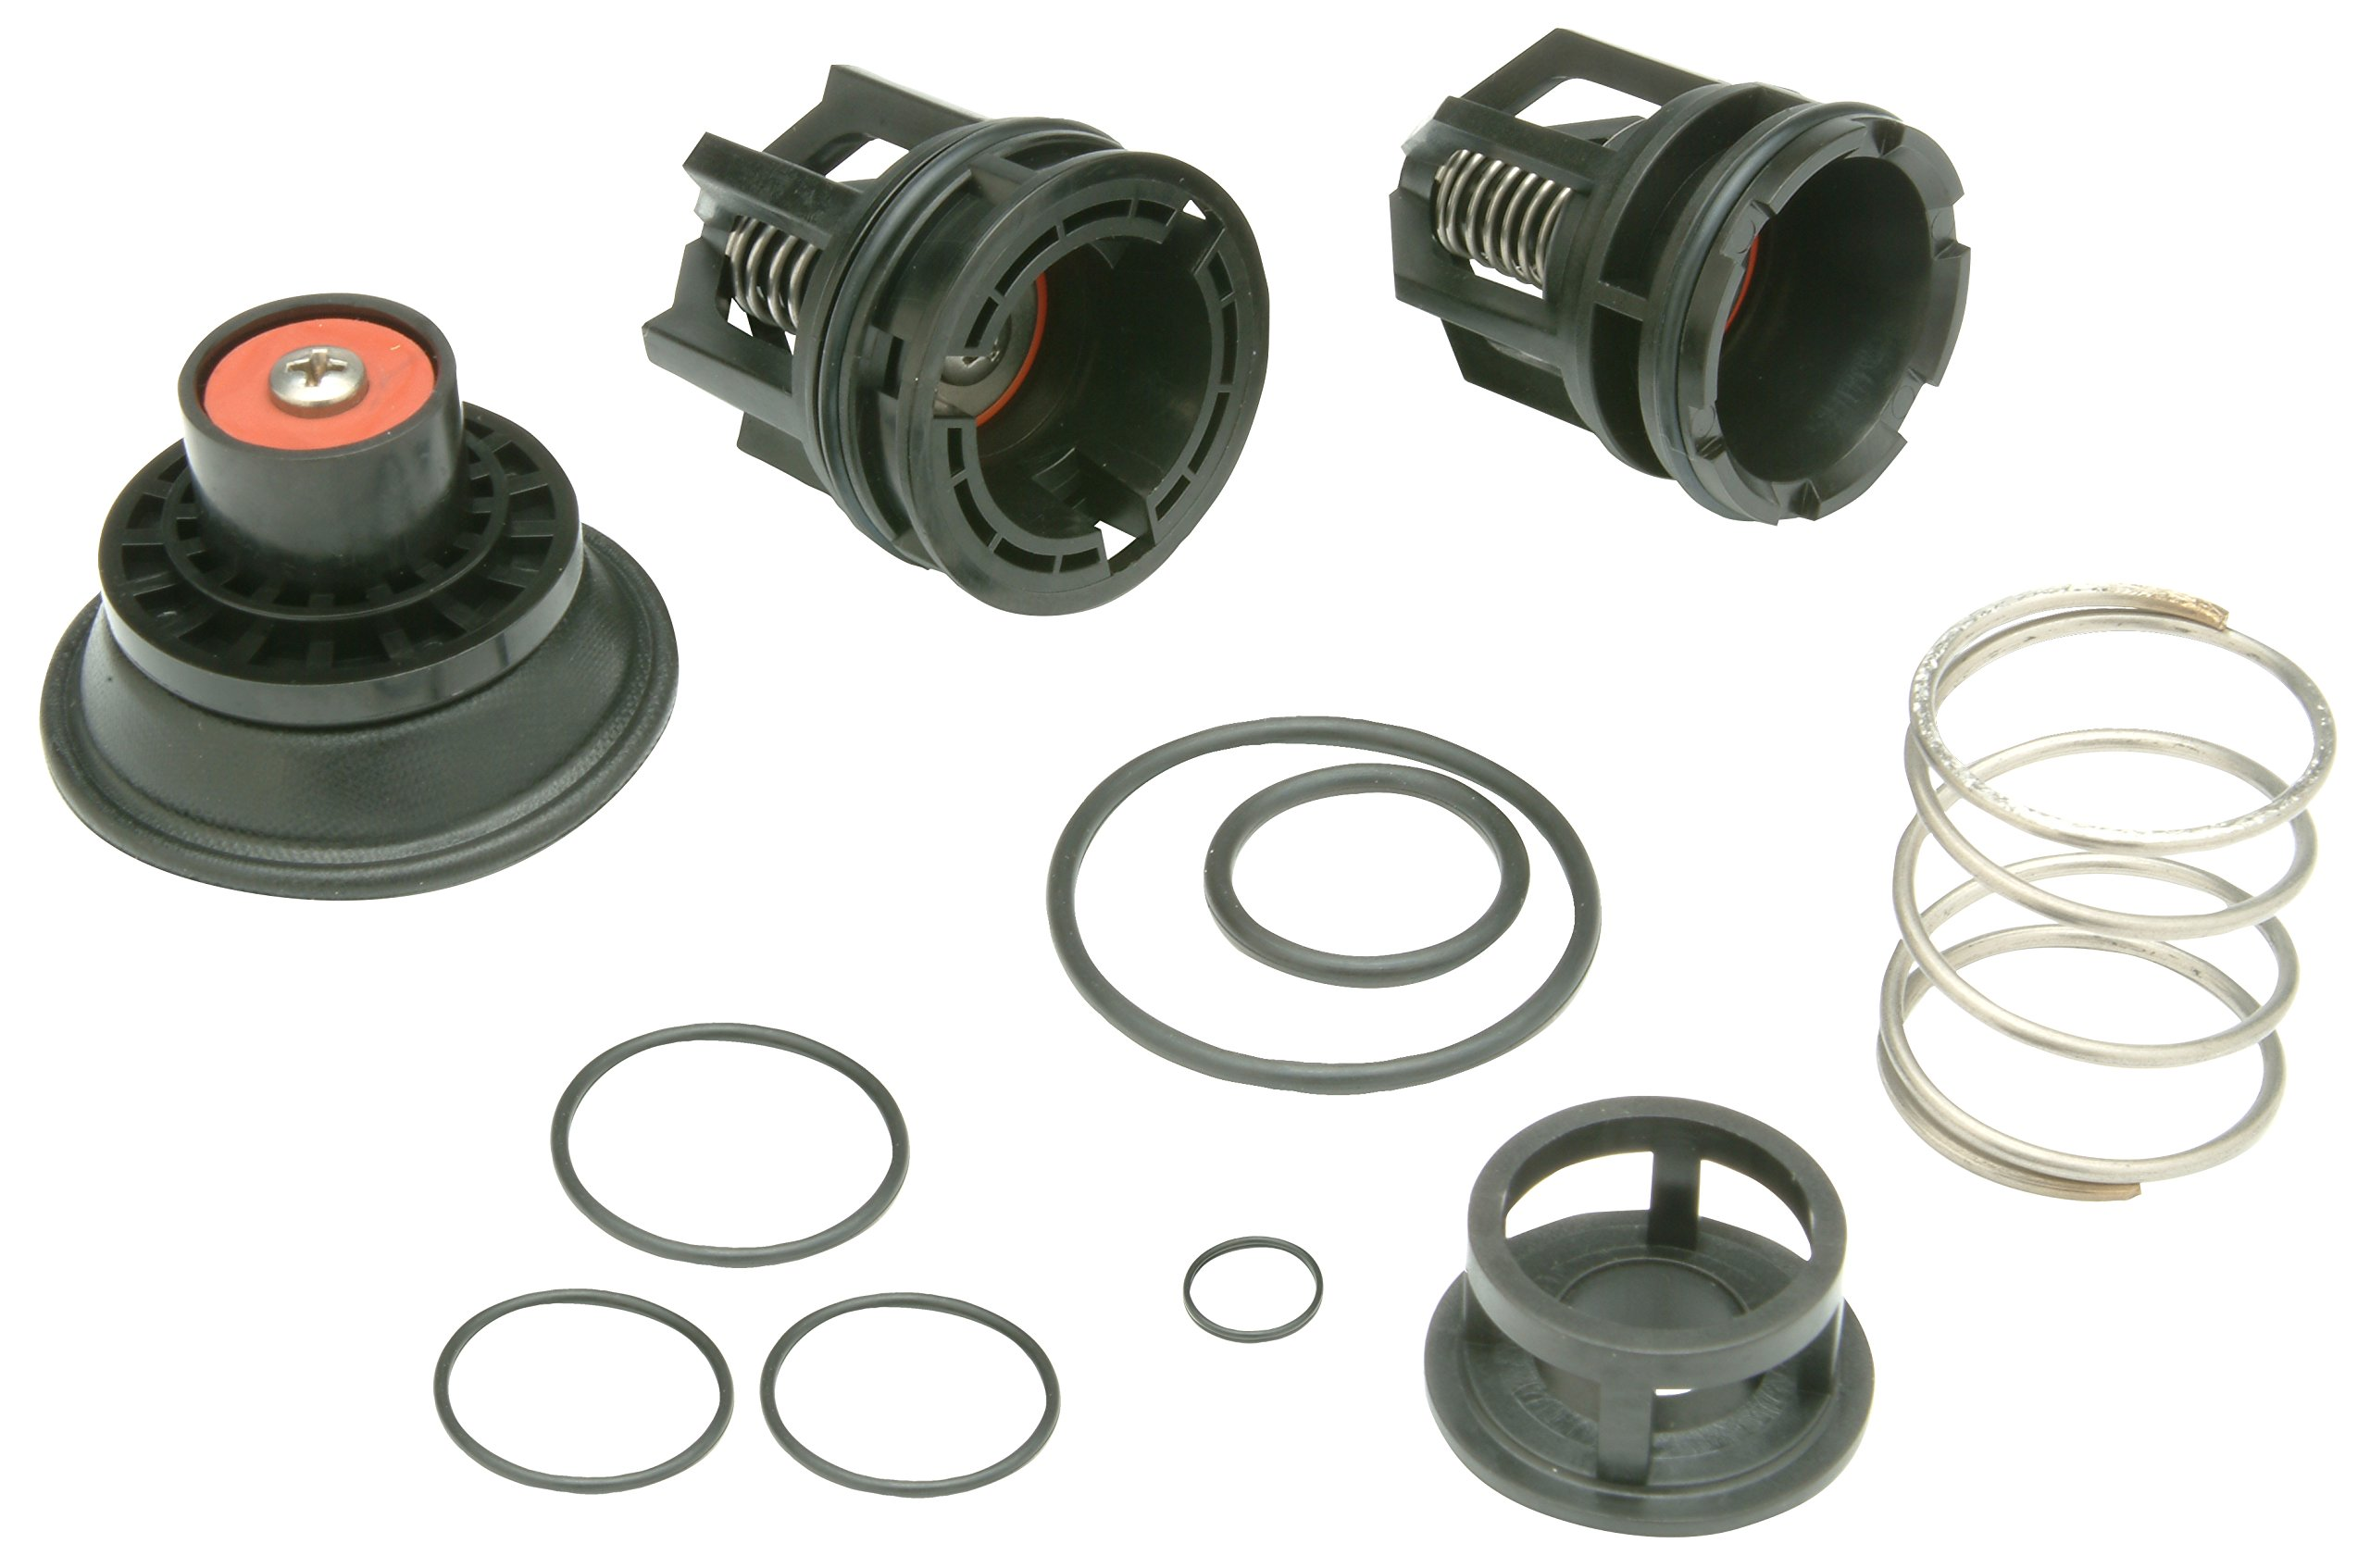 "Zurn RK34-375 Wilkins Complete Internals Repair Kit for 0.50"" to 0.75"" Model 375XL/375/375ST and for 1/2 to 3/4"" Backflow Preventer"